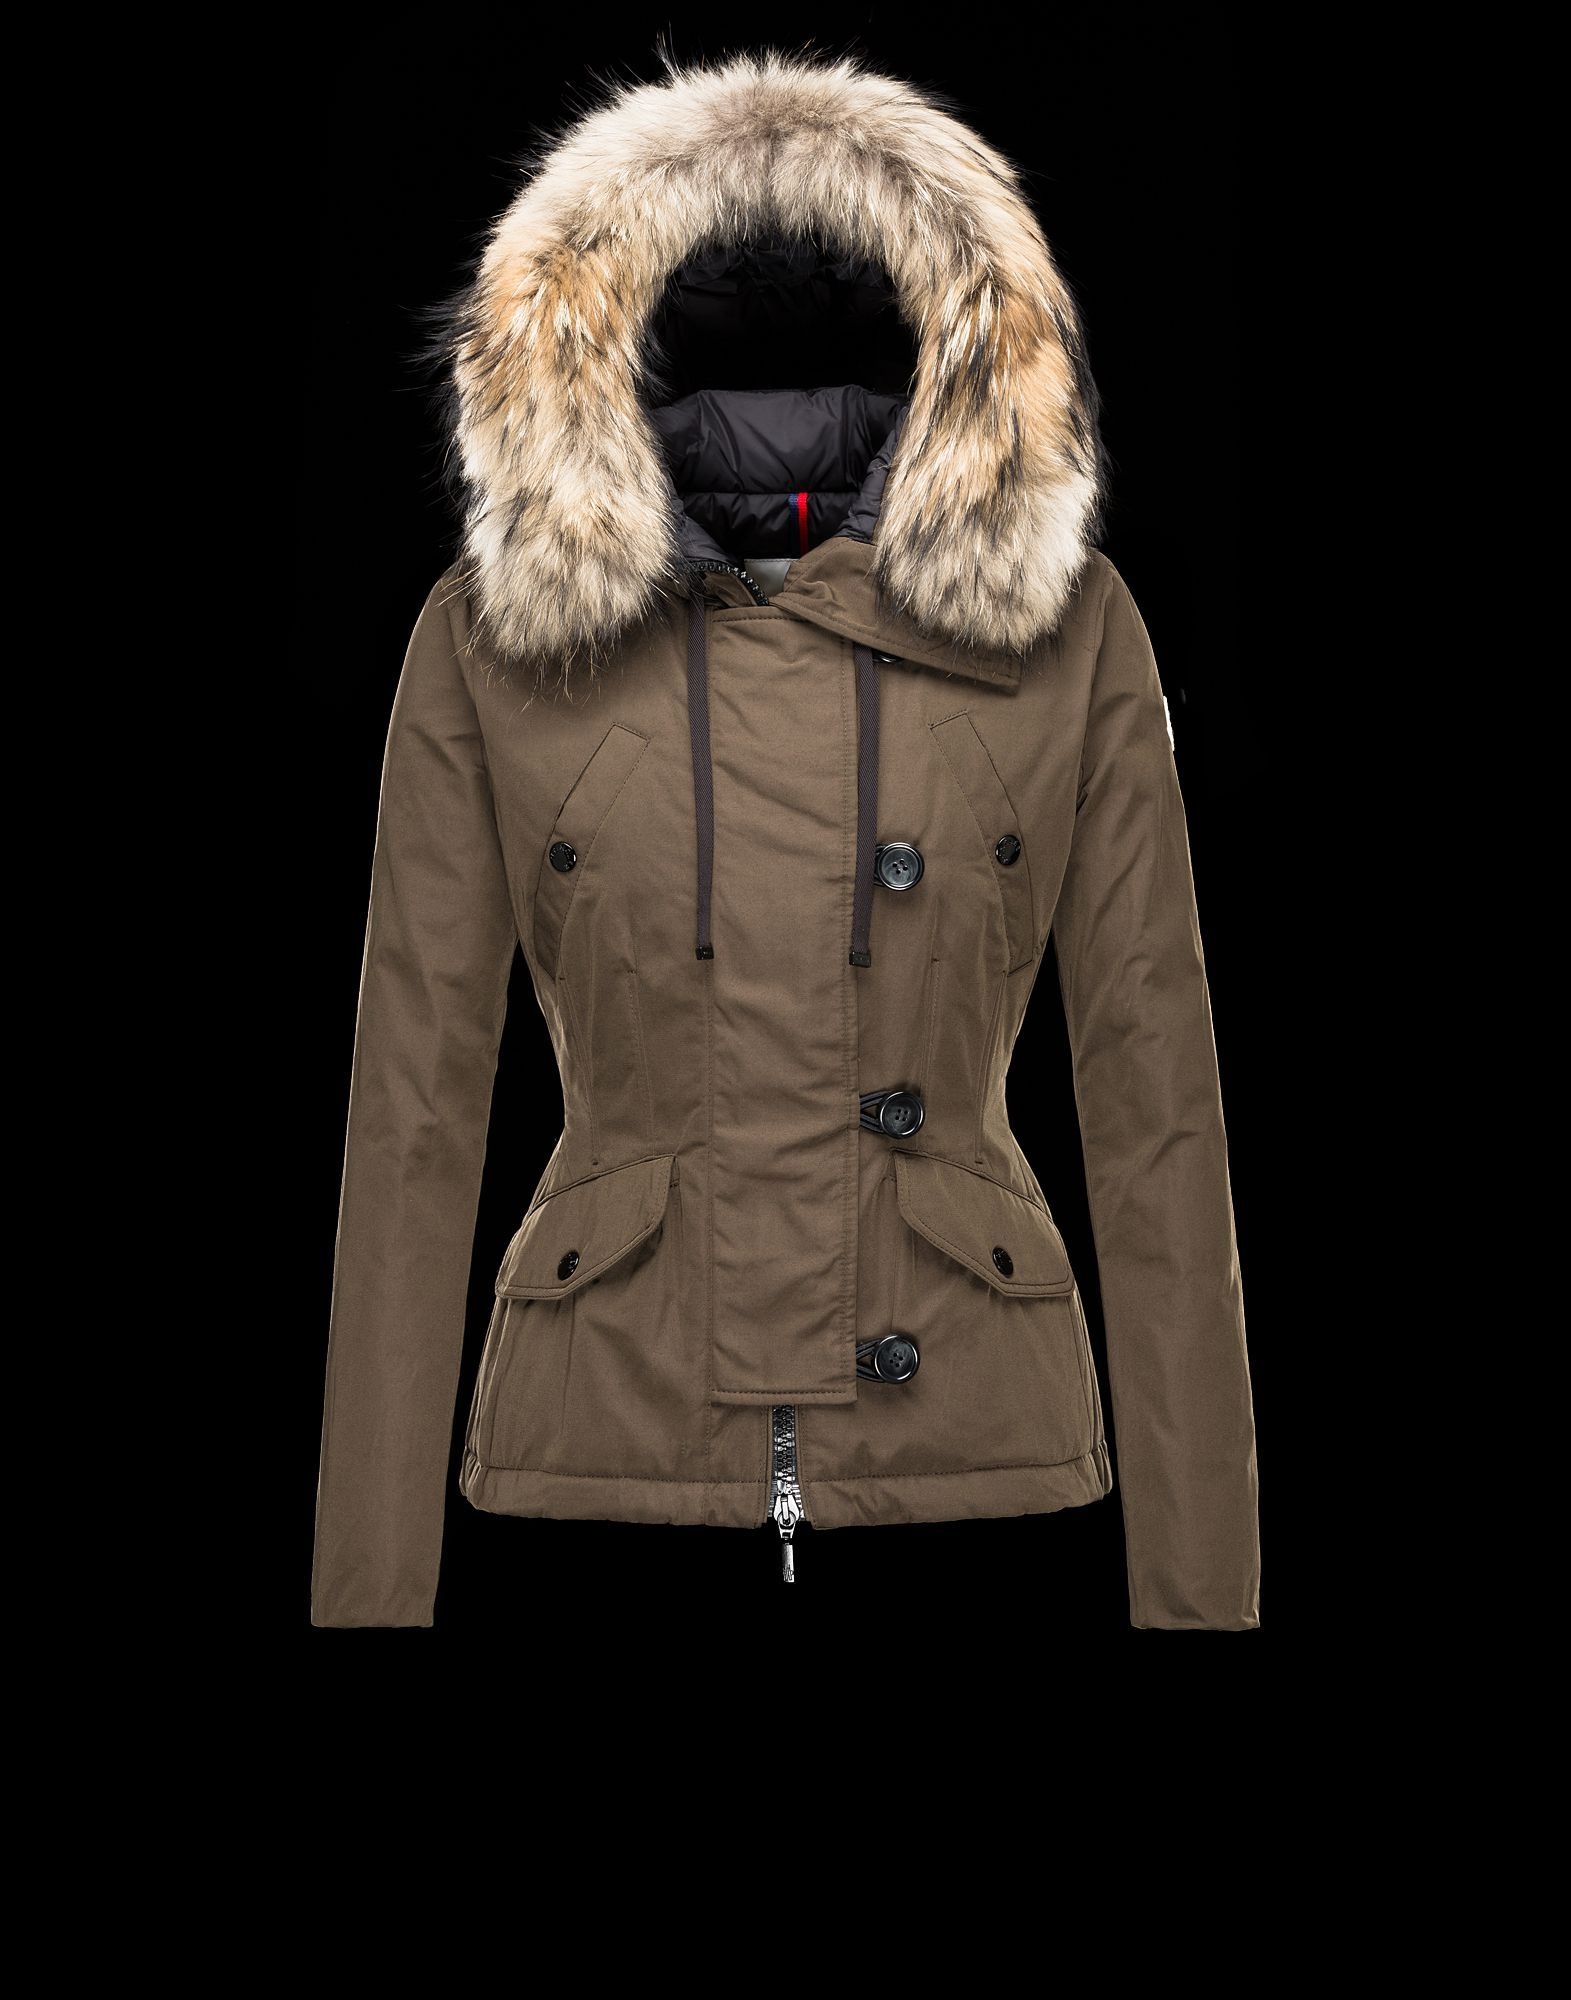 8a207715b22f Jacket Women Moncler - Original products on store.moncler.com